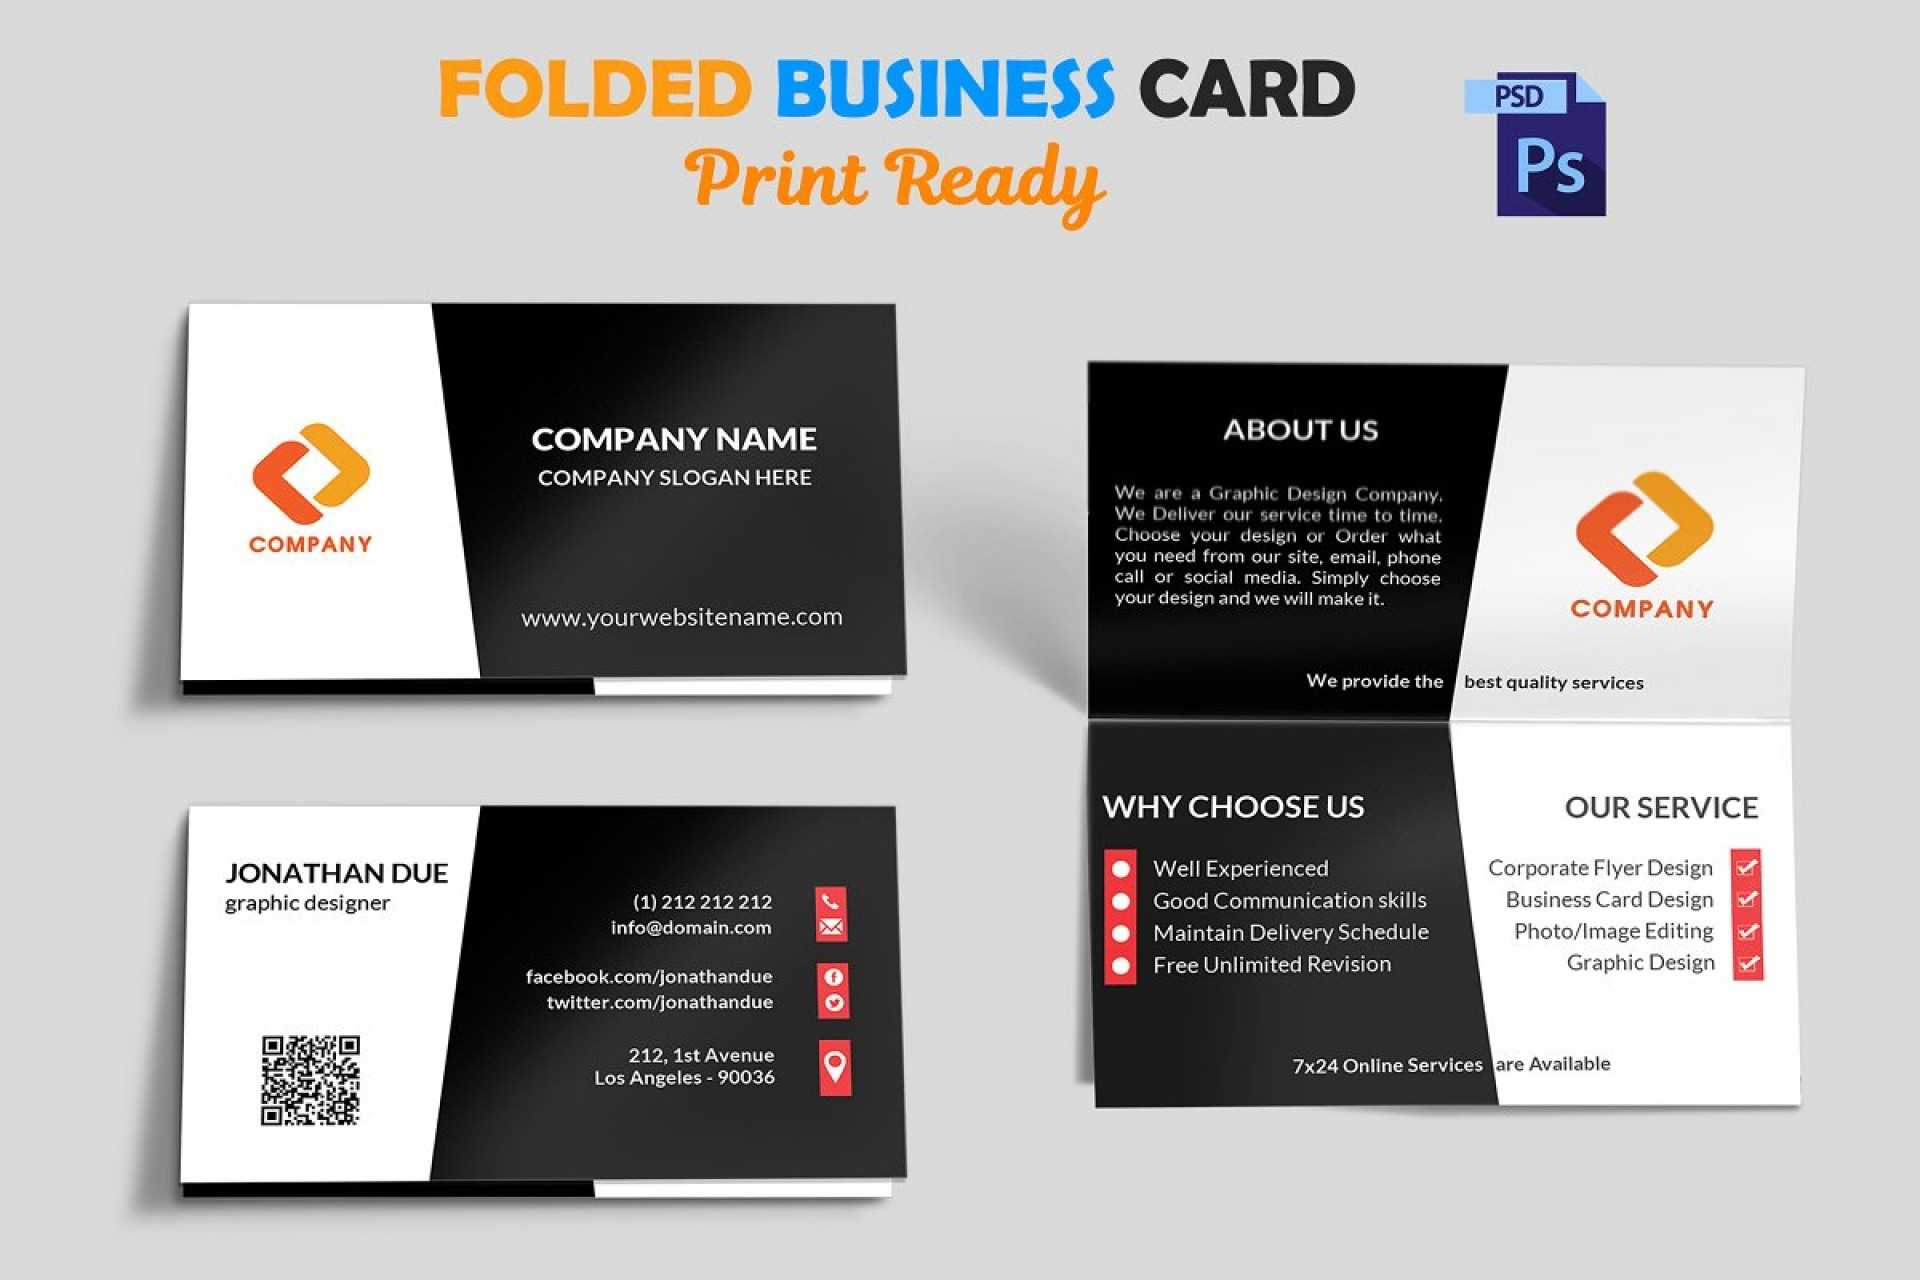 002 Template Ideas Folded Business Card Mock Up Fascinating With Fold Over Business Card Template